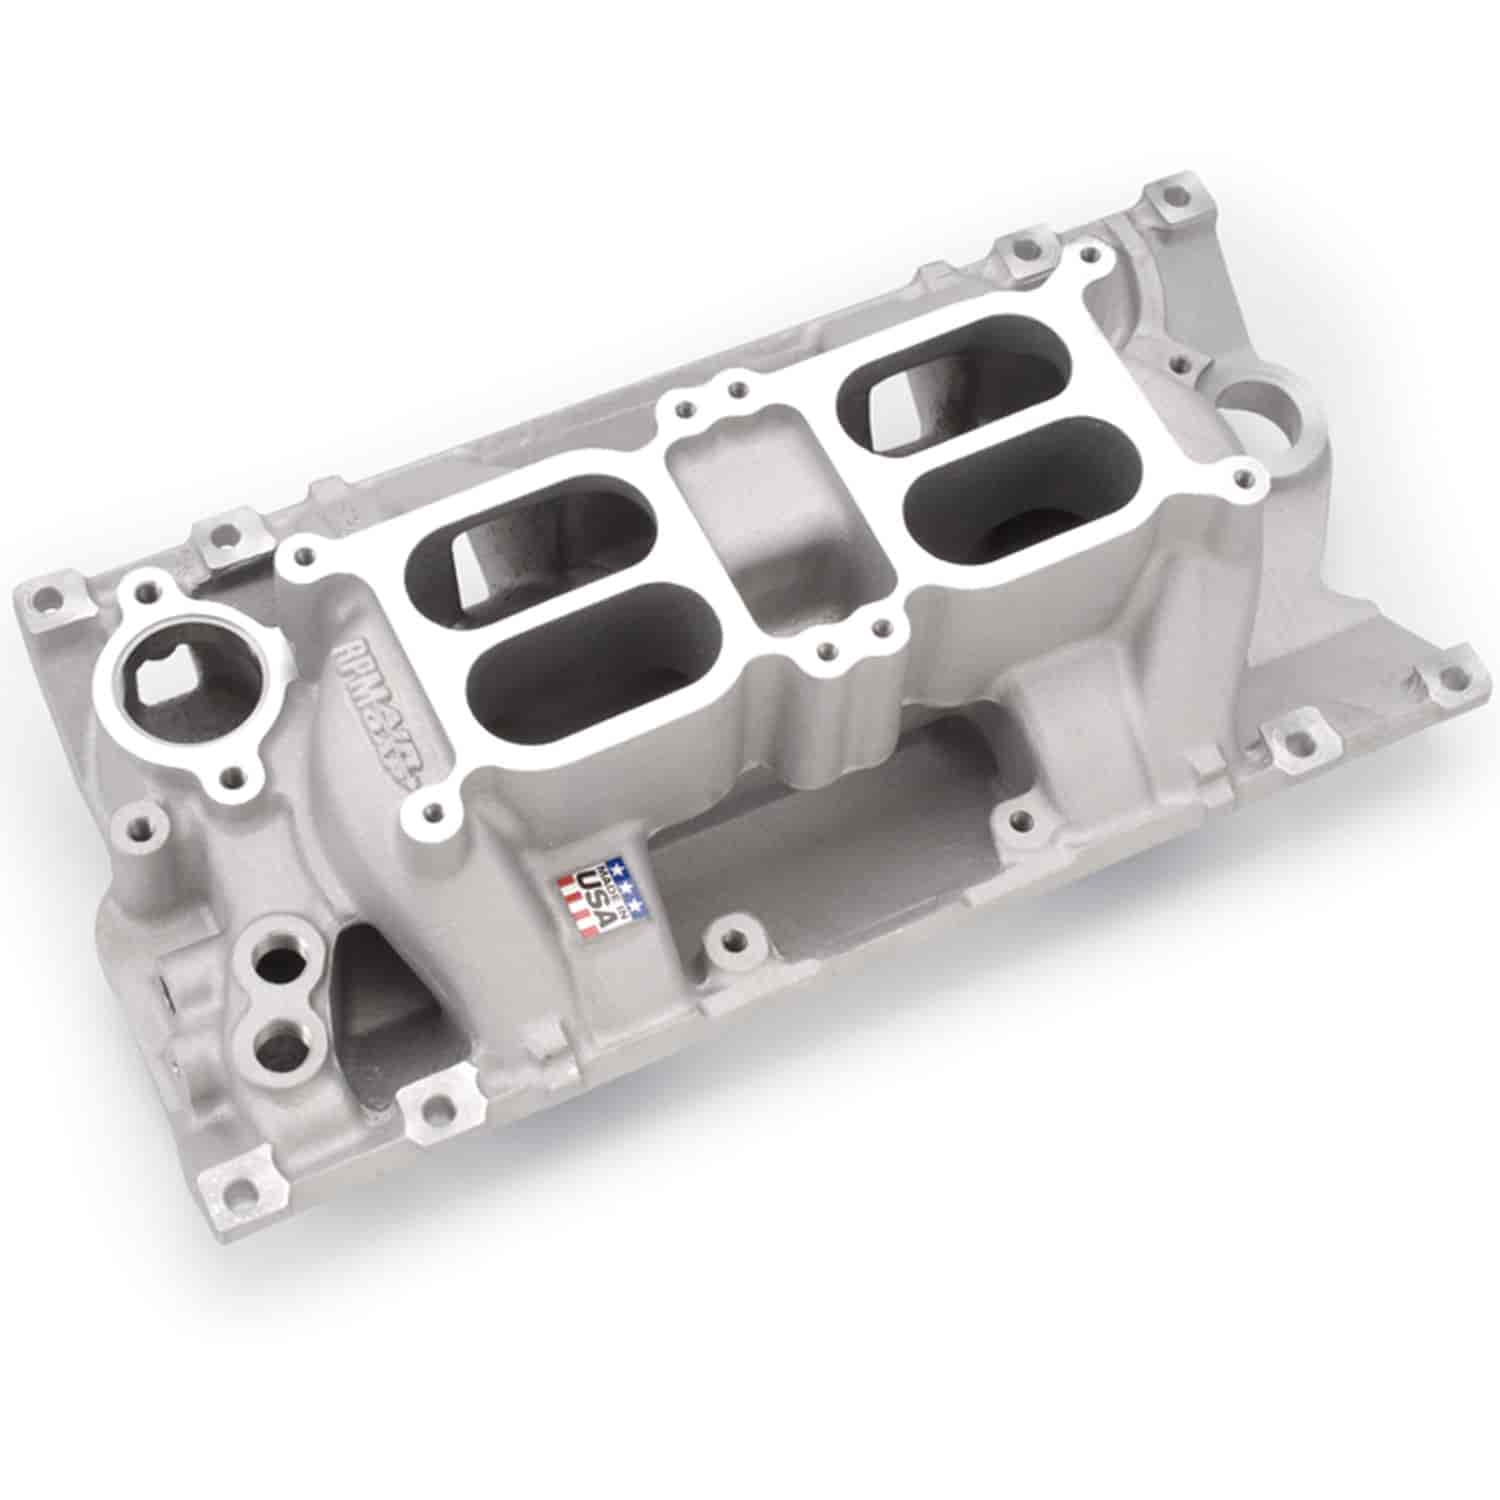 Edelbrock 7526 Performer RPM Air Gap Intake Manifold